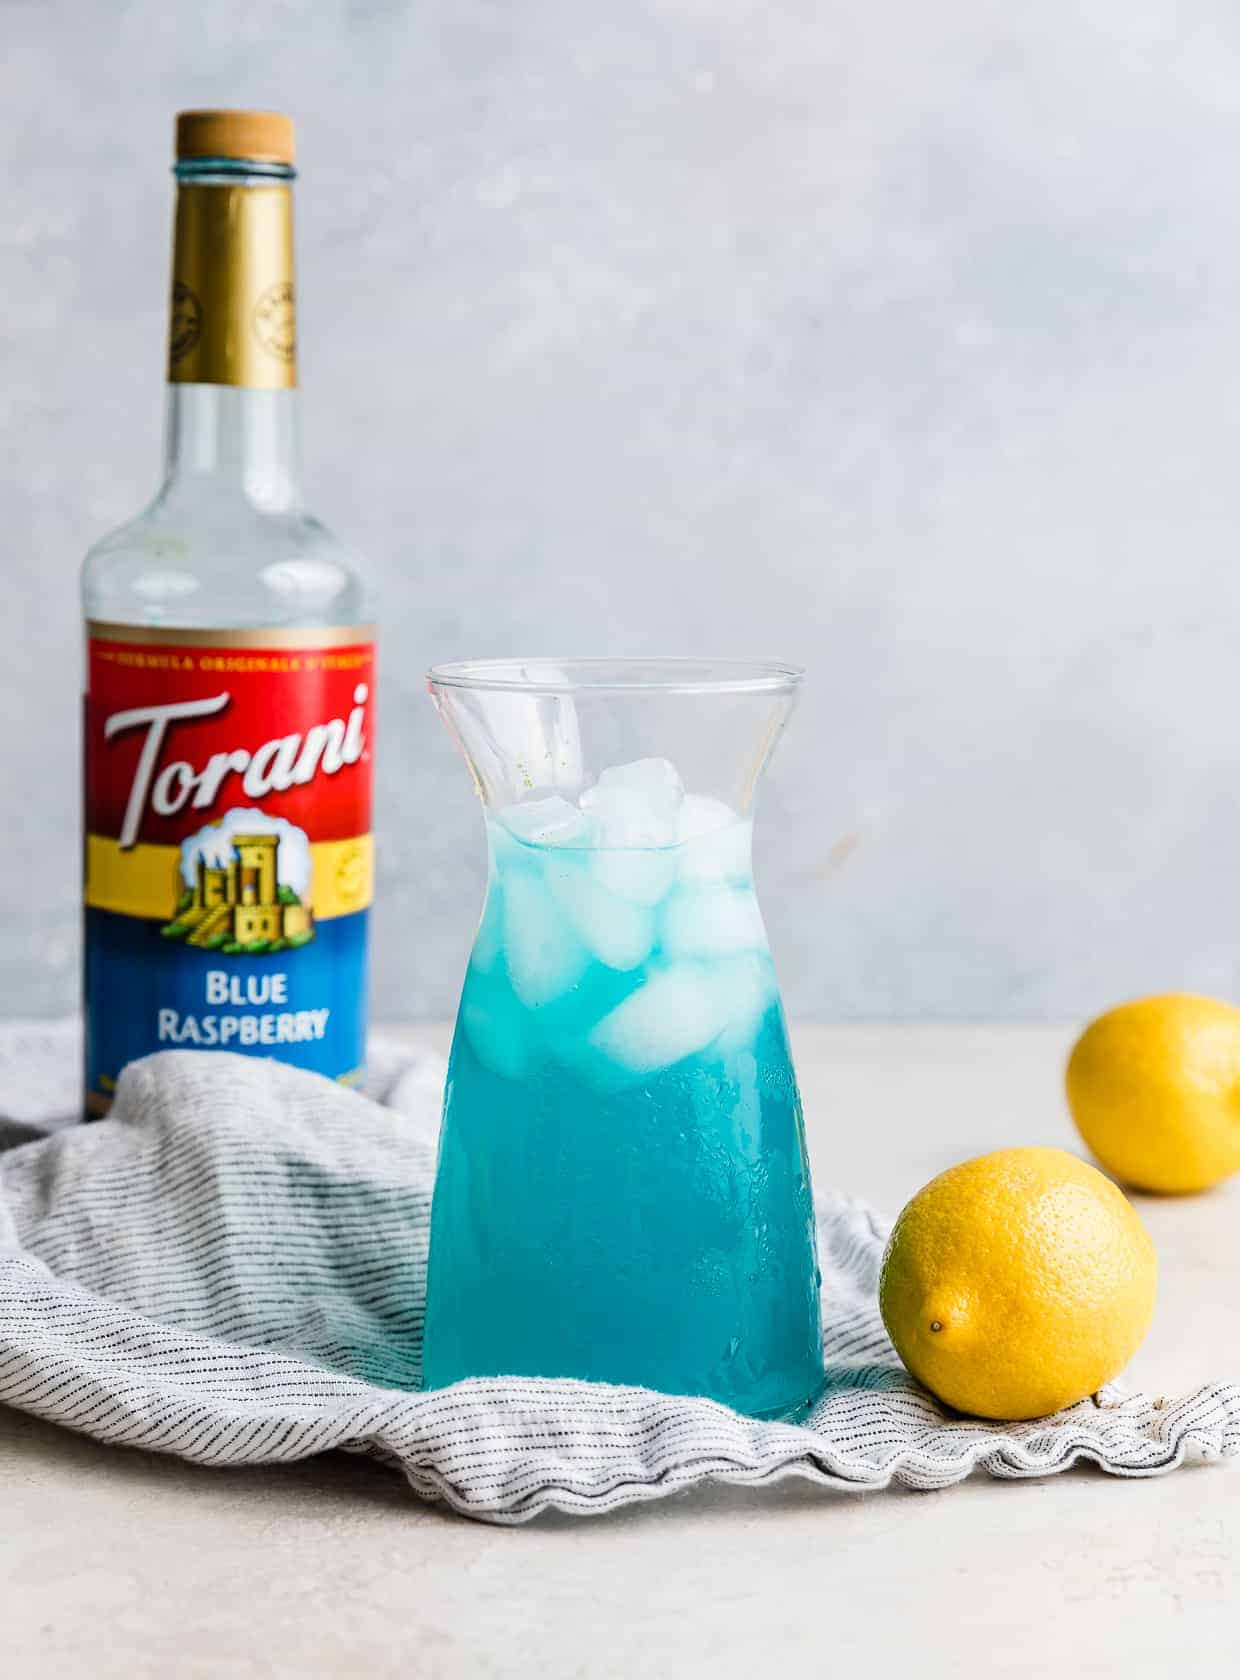 A jar of Blue Raspberry Lemonade against a gray background with a bottle of Torani blue syrup in the background.